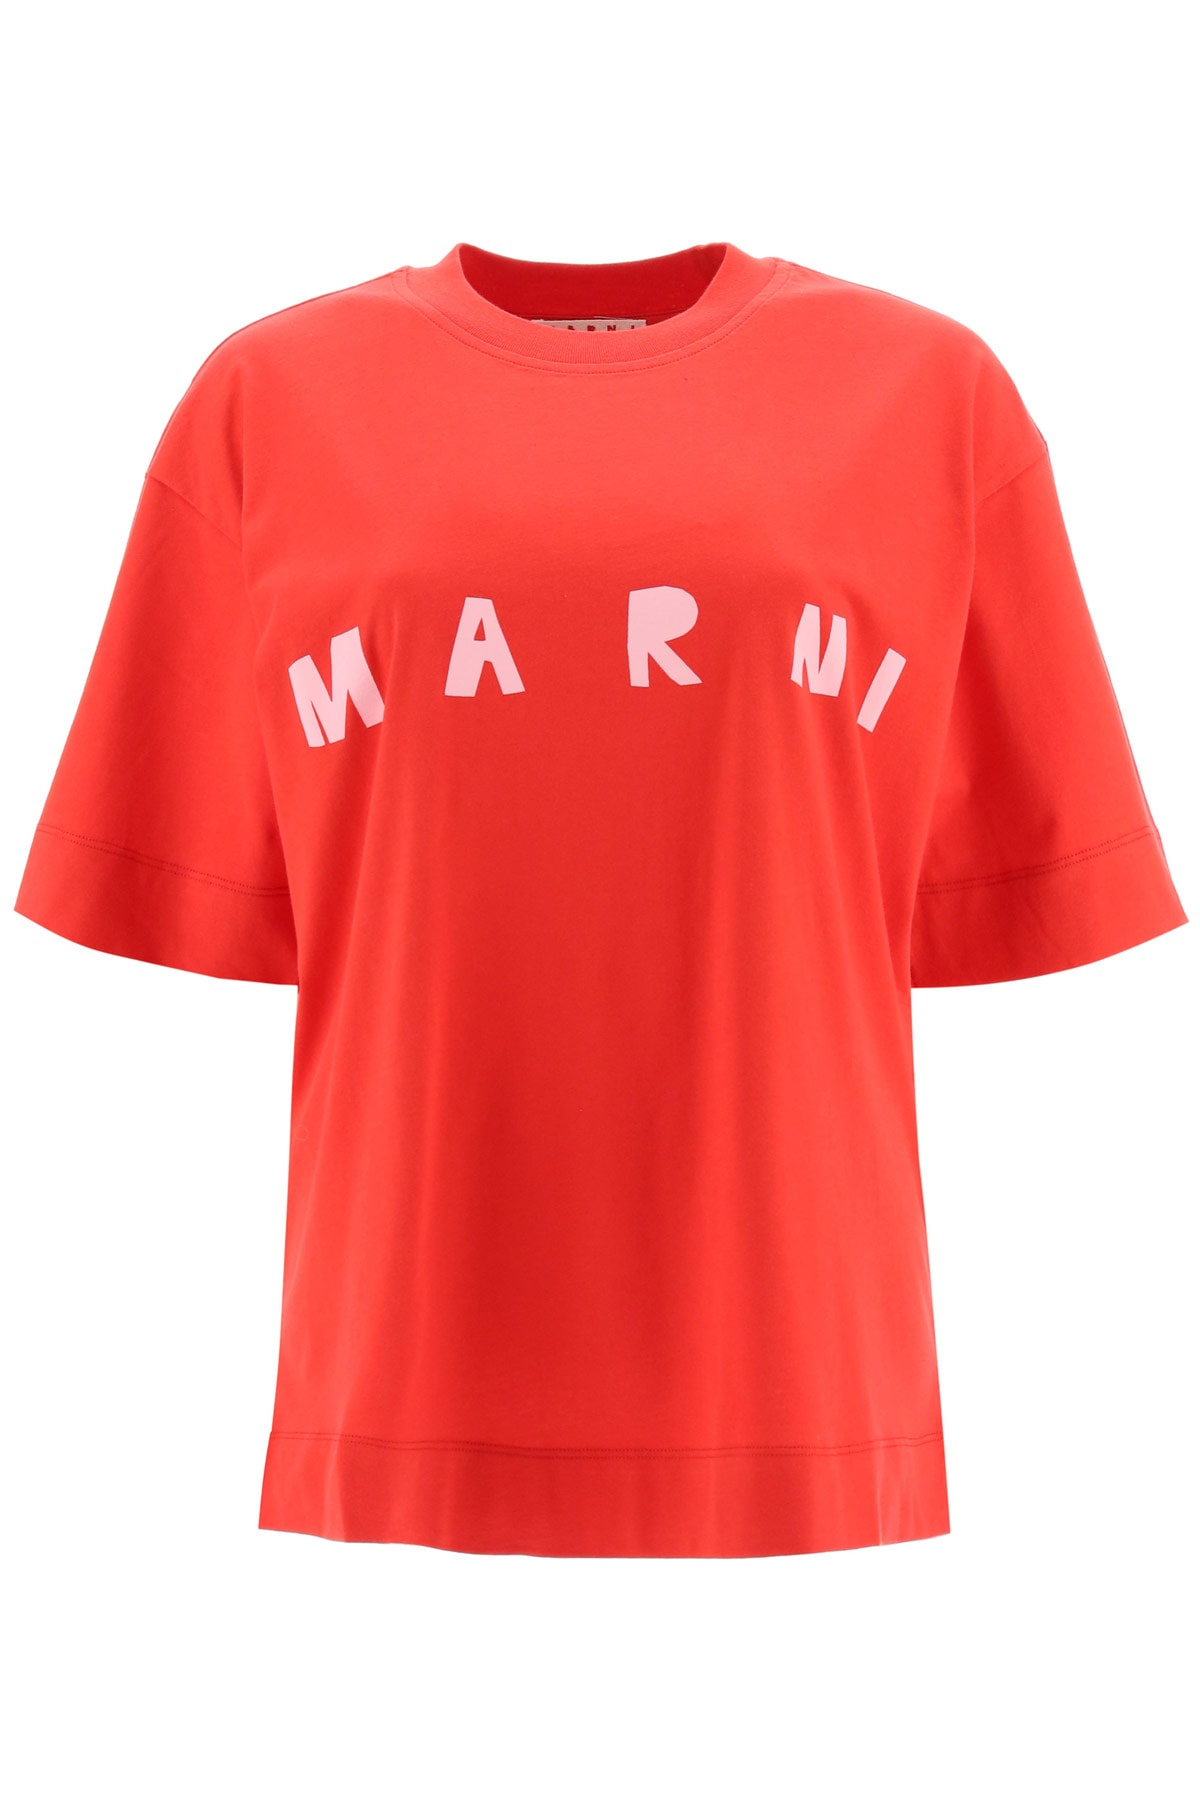 Marni OVERSIZED T-SHIRT WITH LOGO